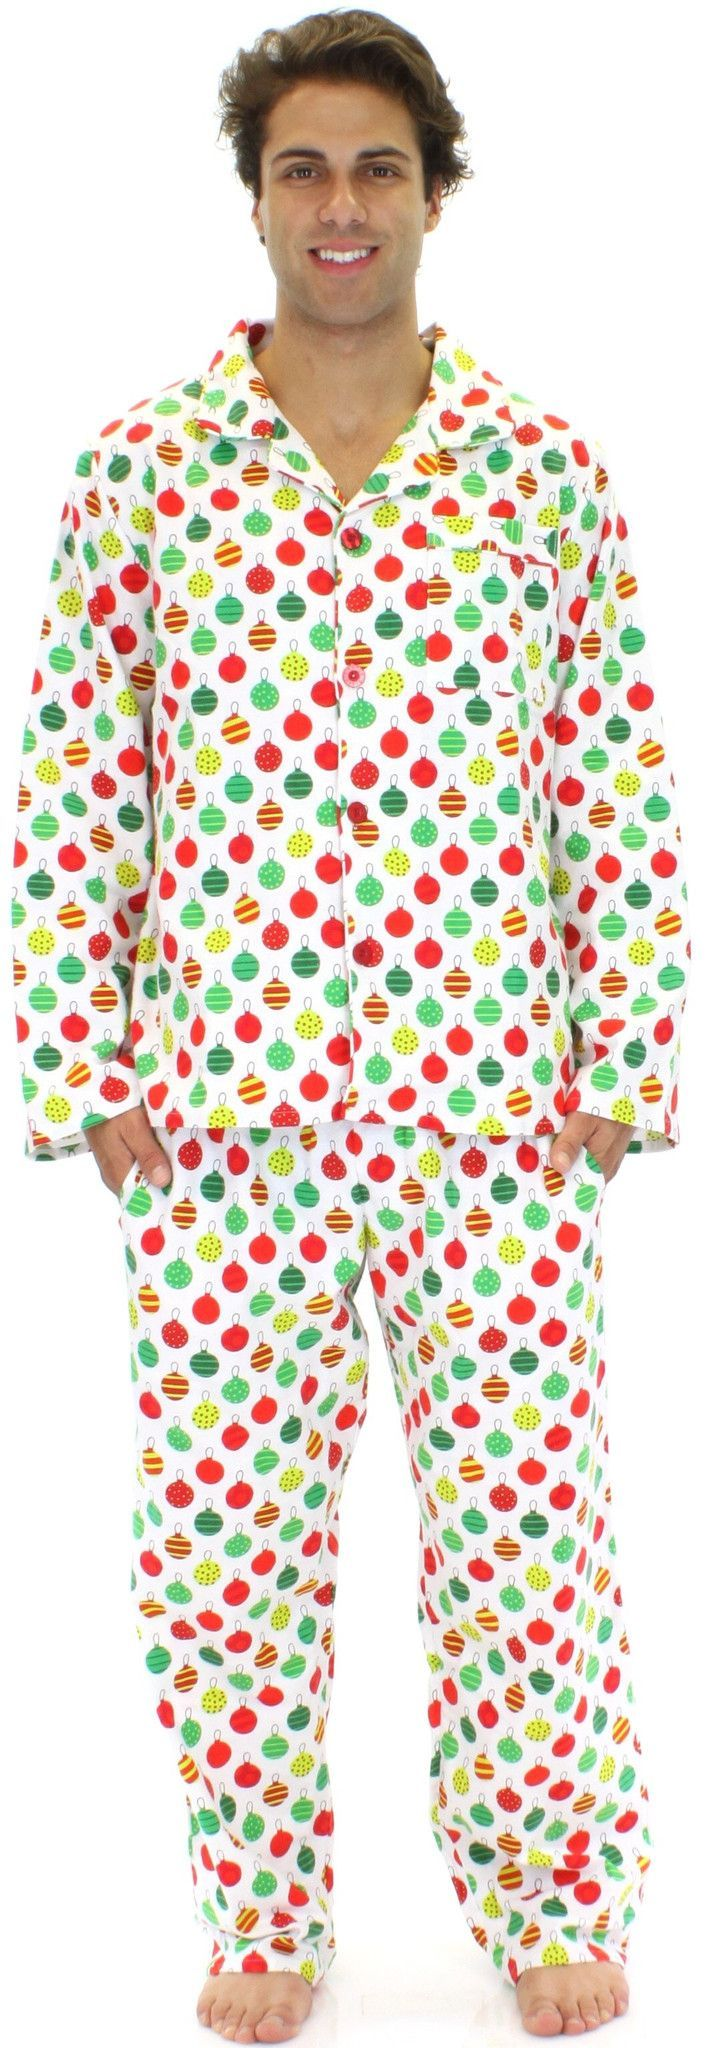 We have hundreds of great styles, even mens pajamas and sleepwear gifts for children such as kids pajamas. All our pajamas for women such as luxurious silk pajamas are fun and creative gifts, and every PajamaGram comes in its own keepsake gift packaging for the ultimate presentation.